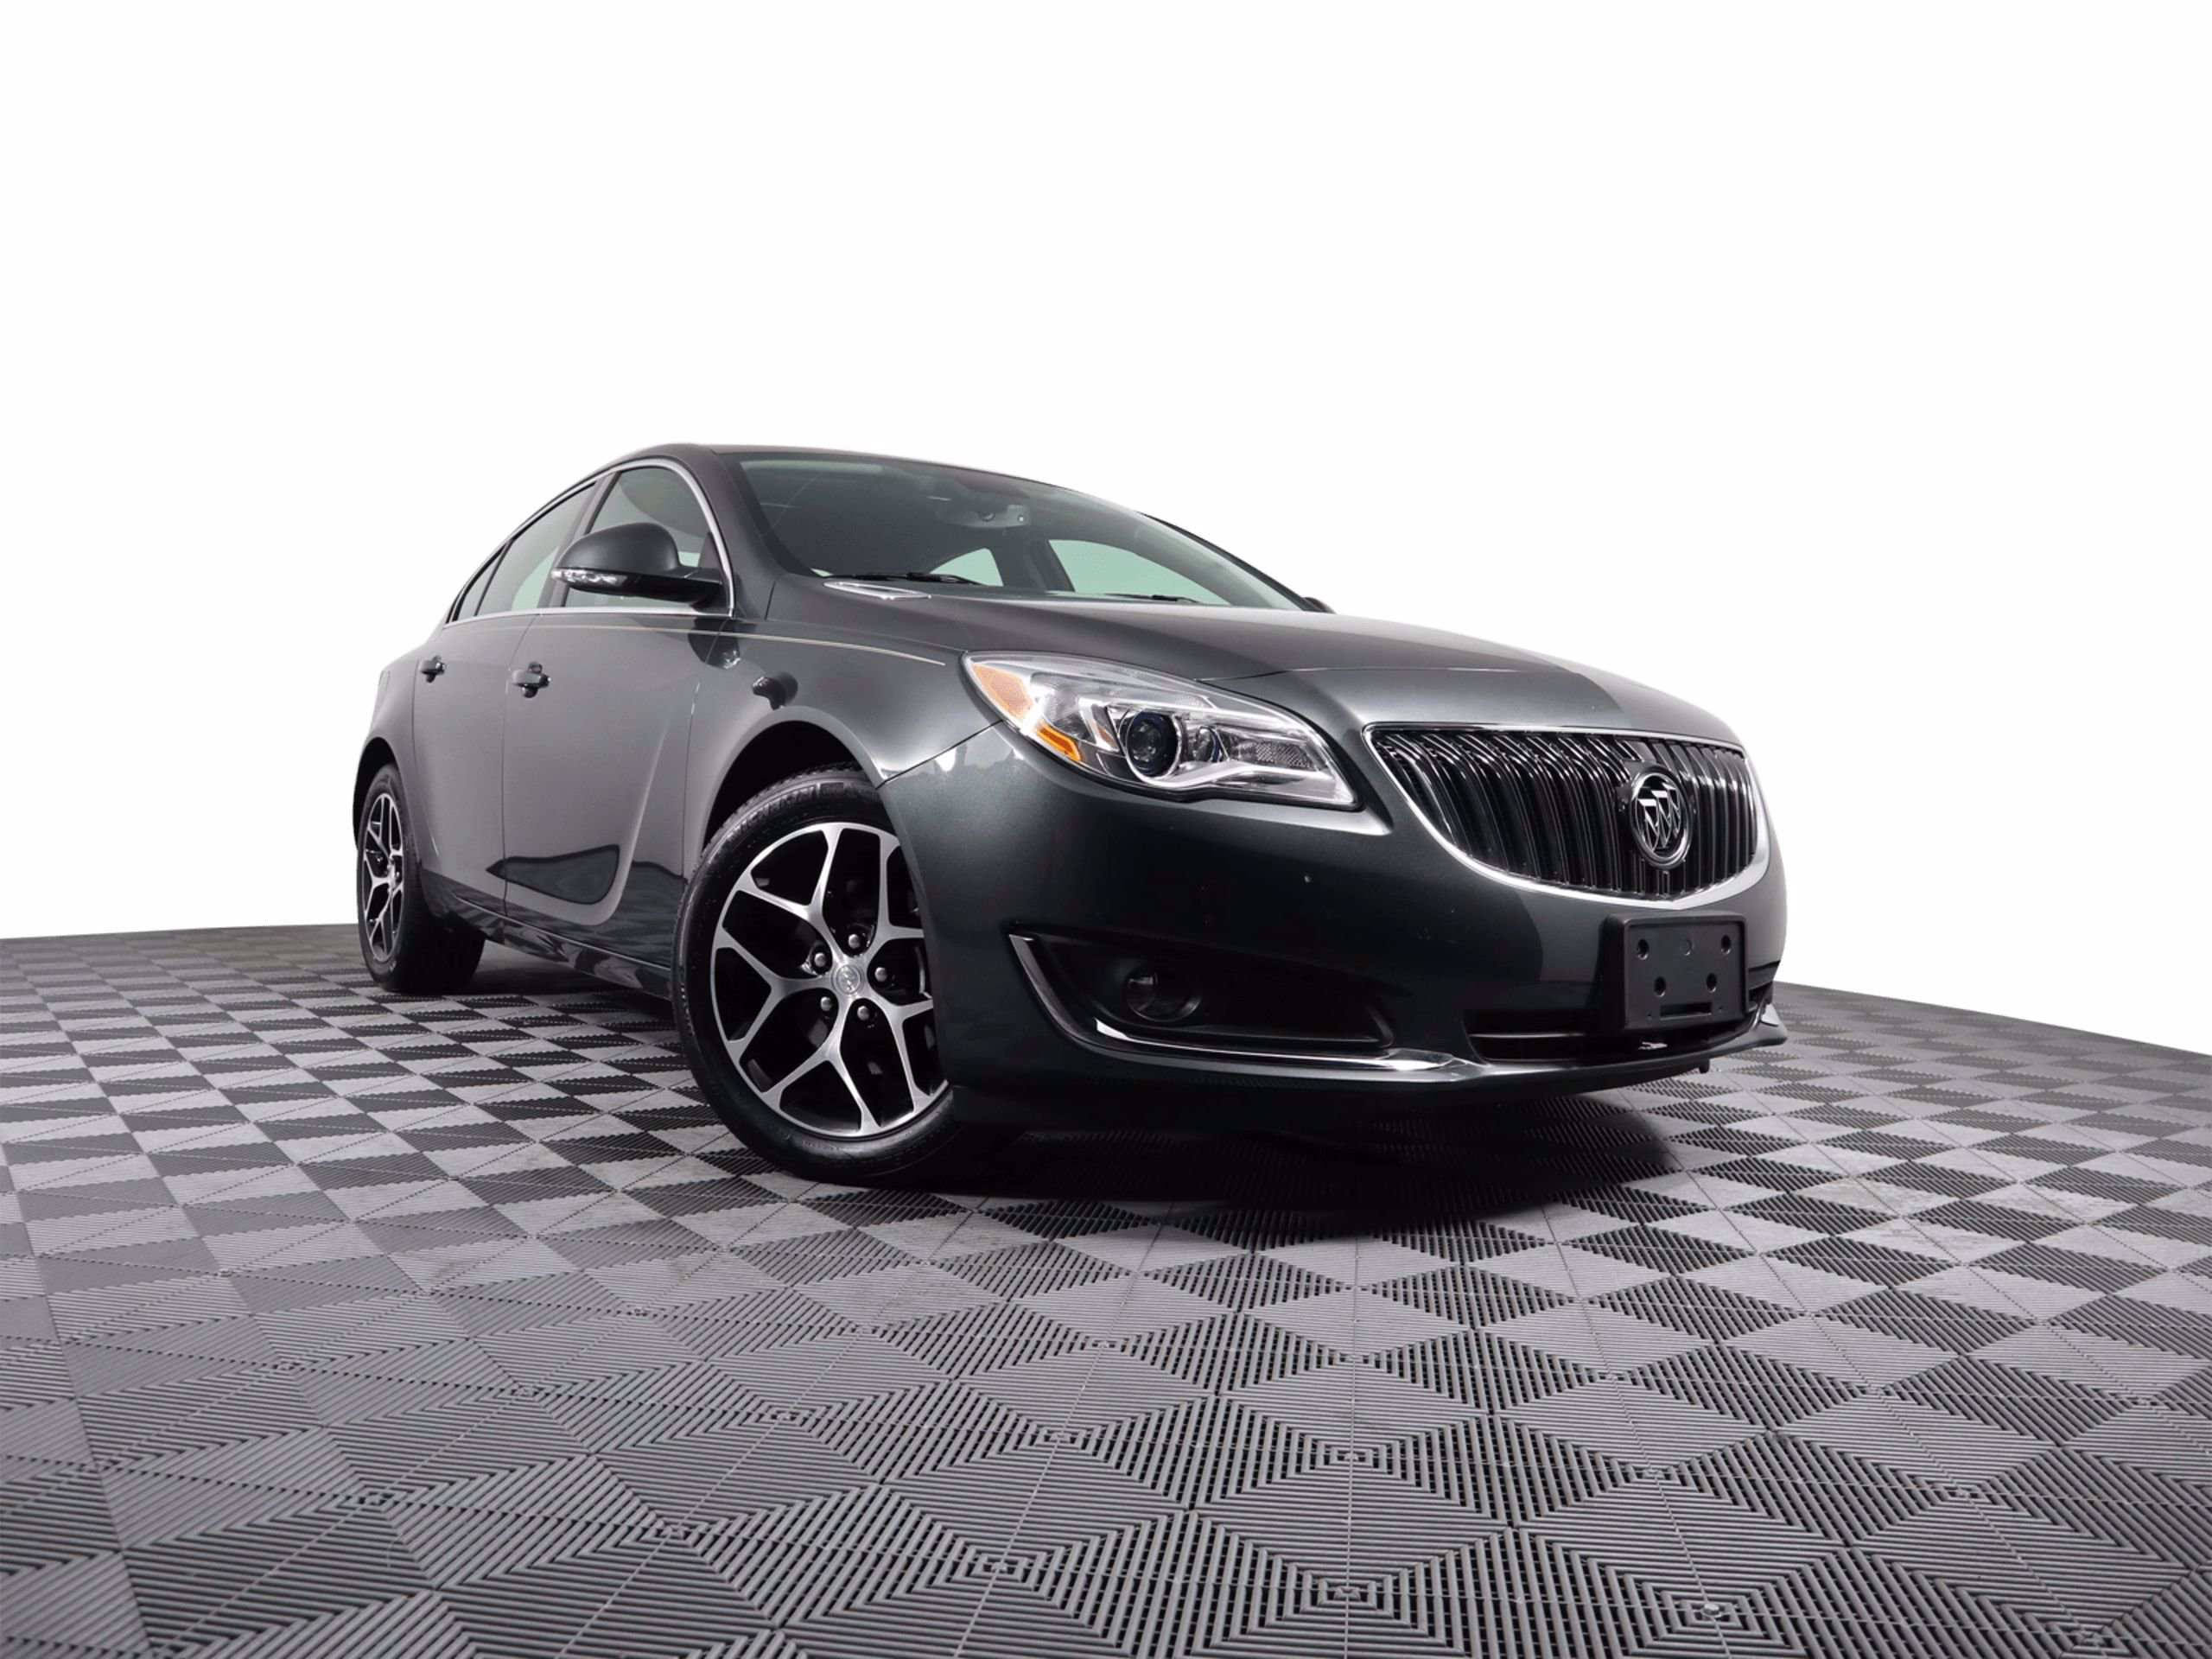 2017 Buick Regal Sport Touring Fwd 4Dr Car New 2022 Buick Regal Mpg, Engine, Owners Manual